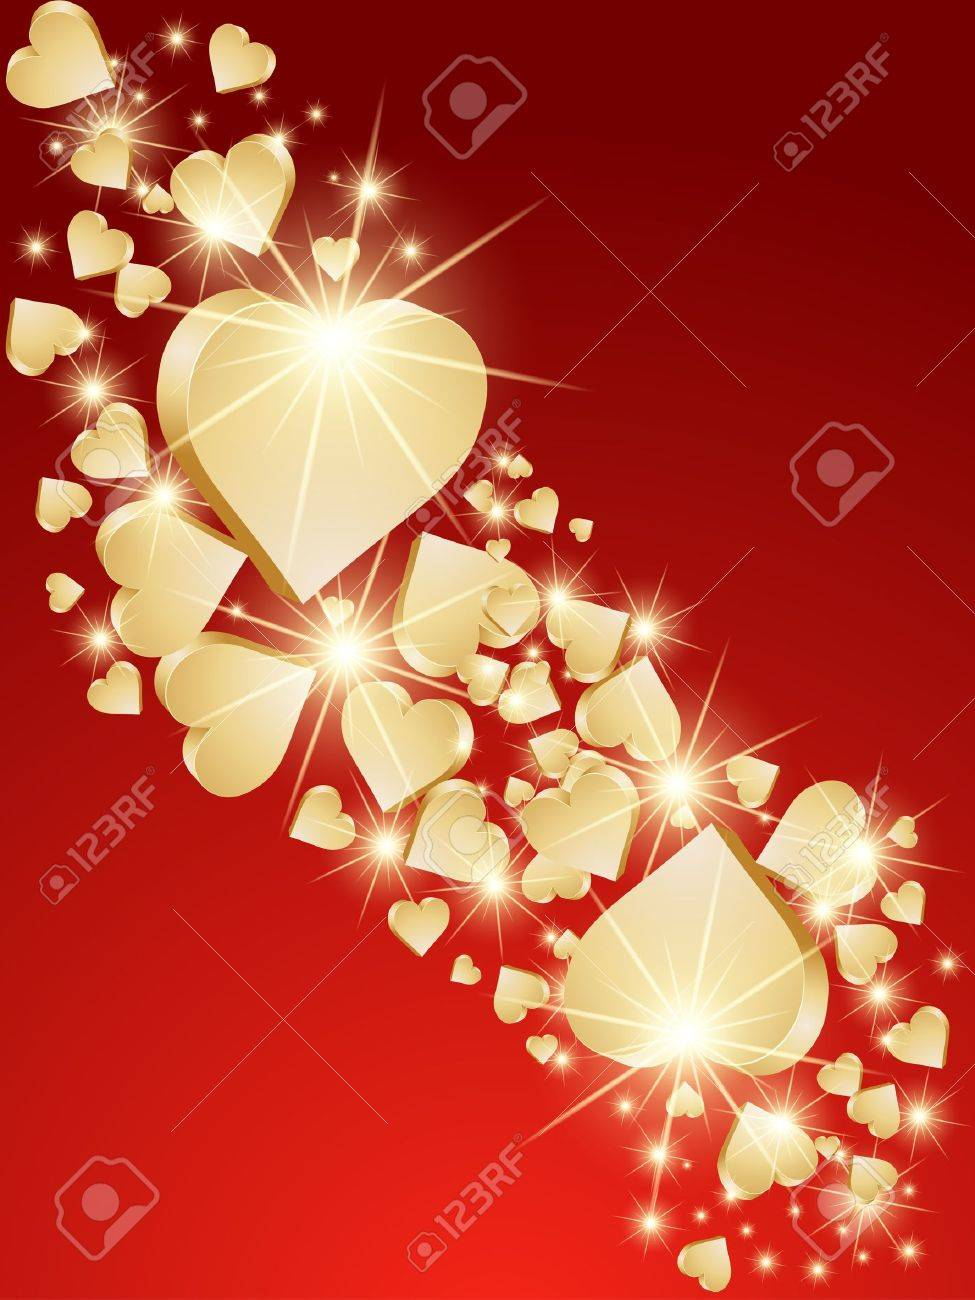 Background 3d golden hearts. Vector Stock Vector - 15251225